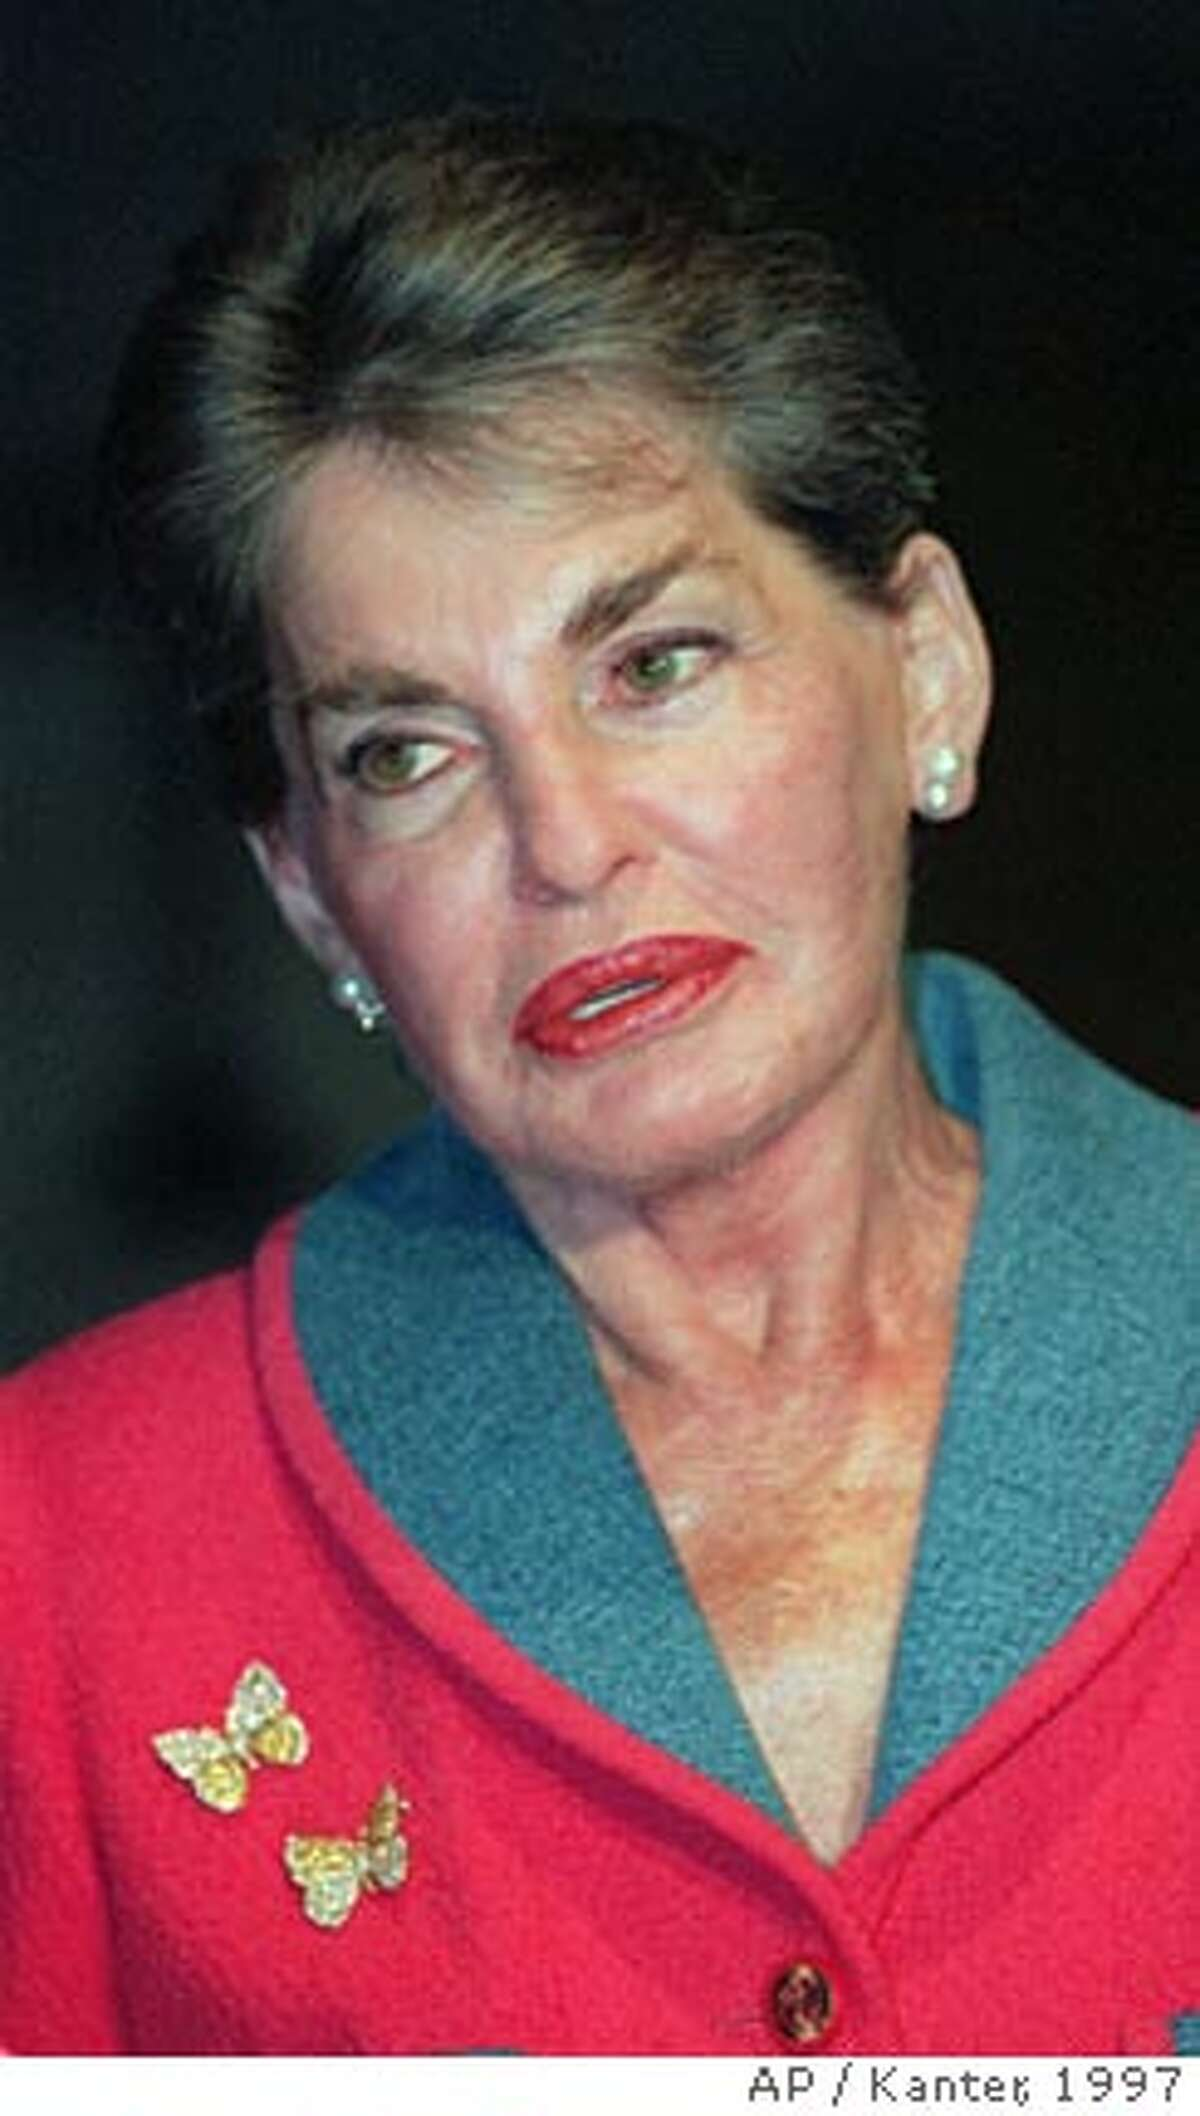 **FILE** Billionaire real estate heiress Leona Helmsley is shown in this Wednesday, May 28, 1997 file photo, in New York. Helmsley, the hotelier who went to prison as a tax cheat and was reviled as the